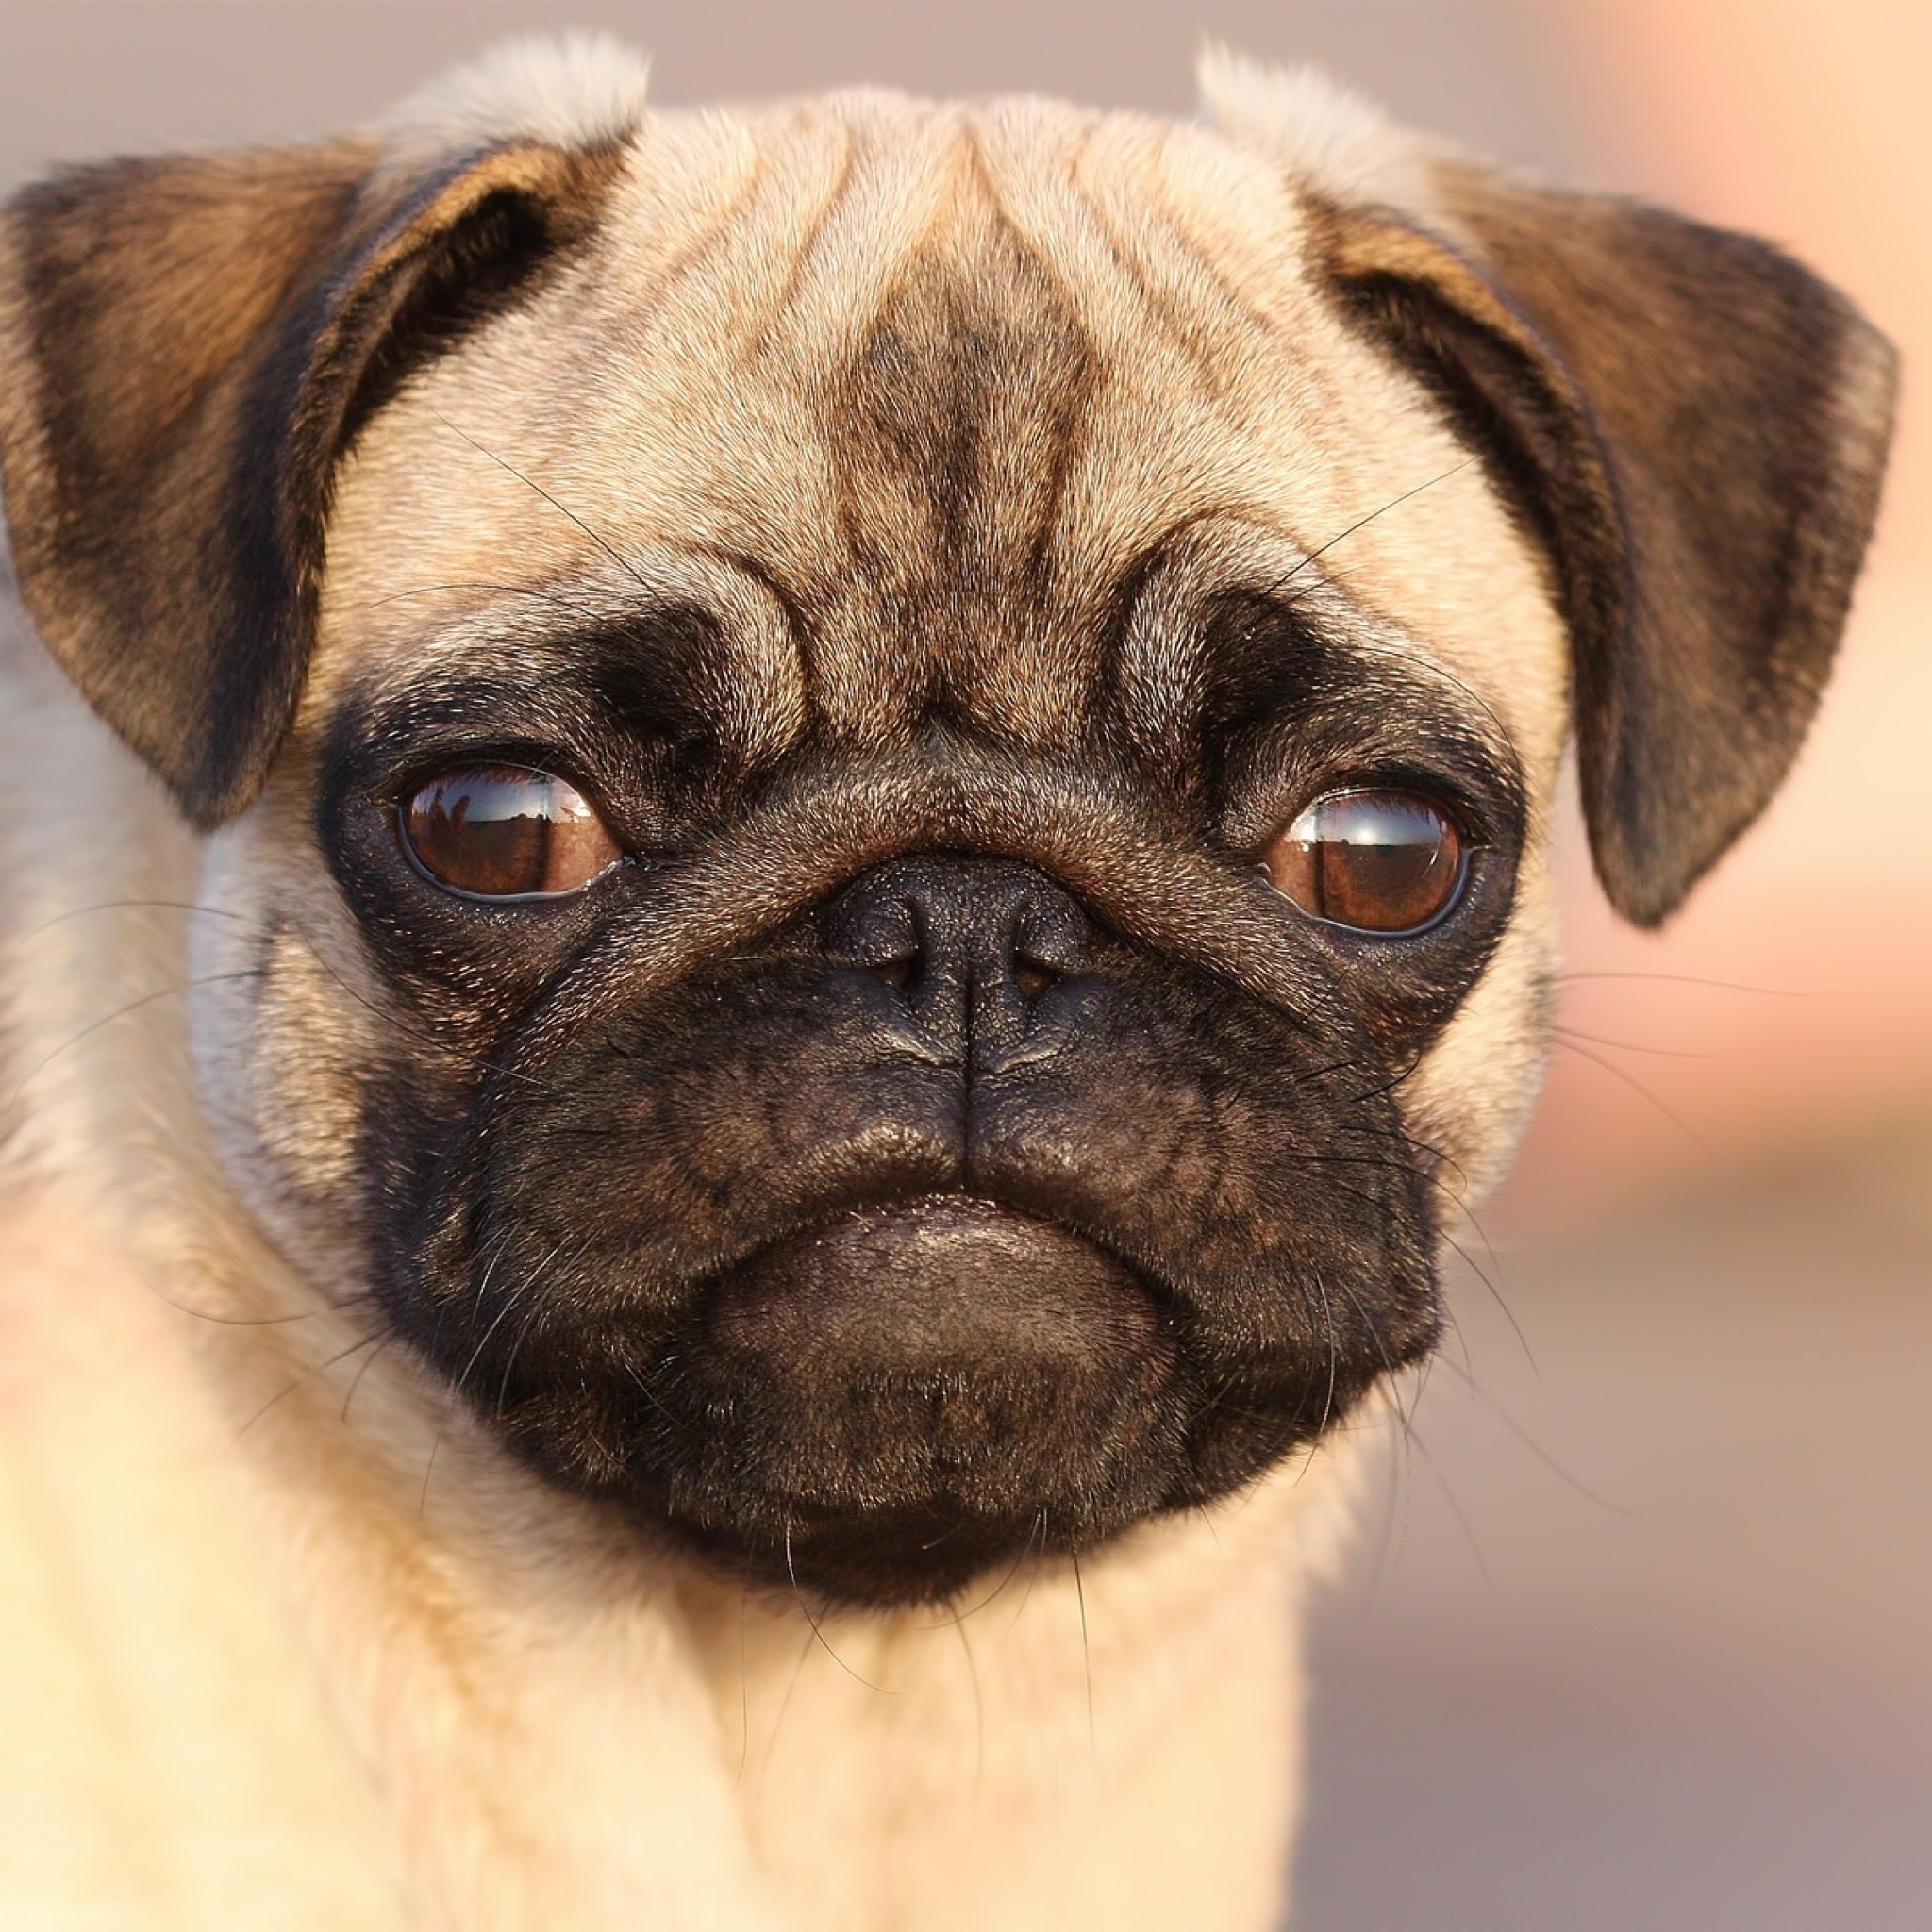 Pug Puppies Wallpaper (61+ Images